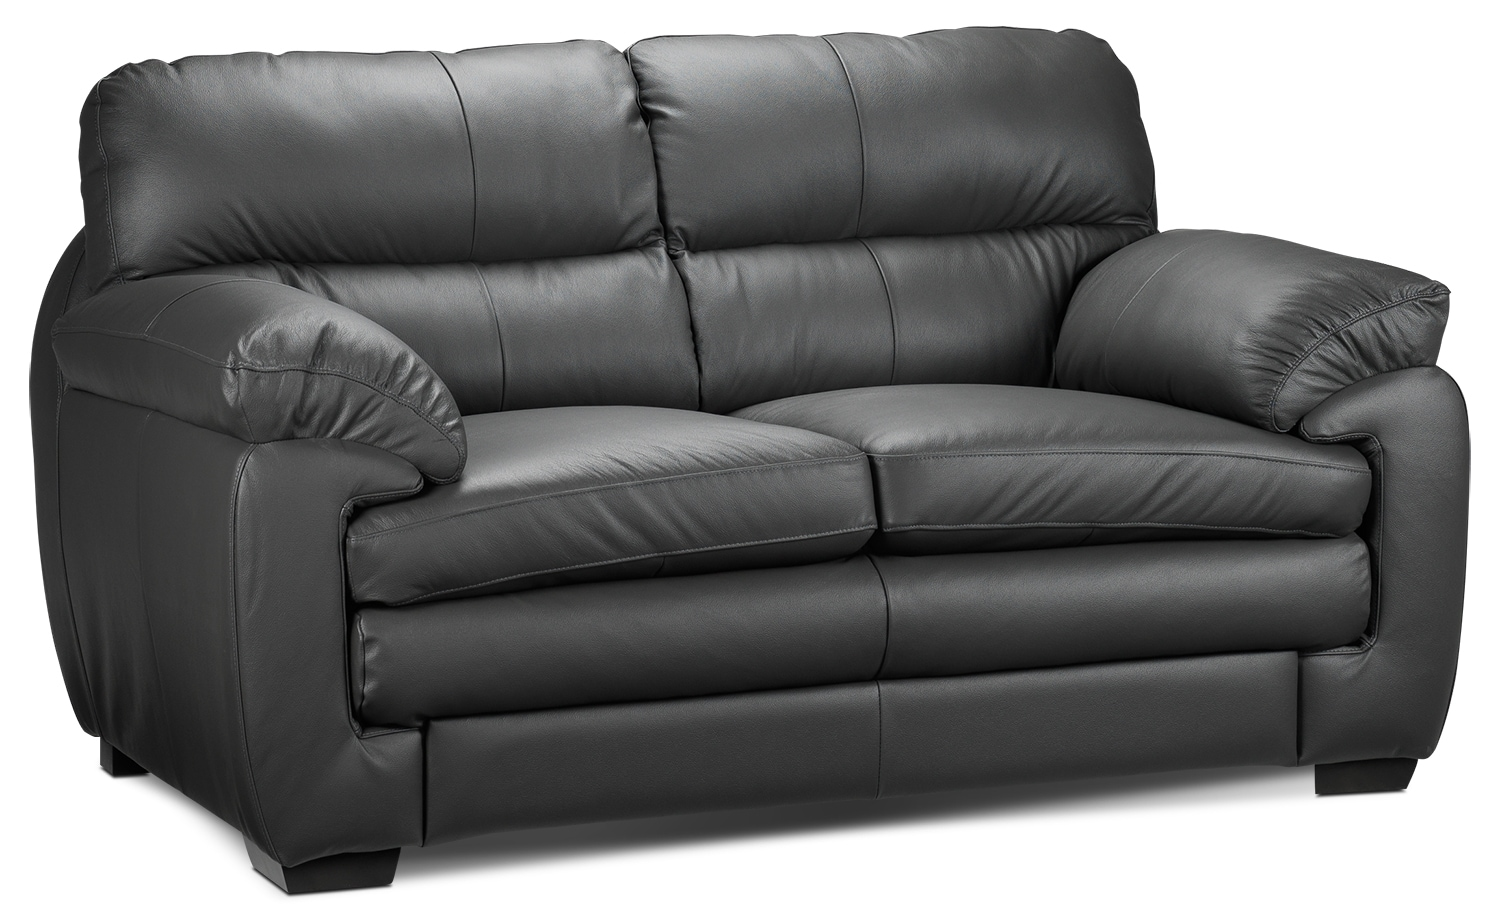 Living Room Furniture - Cambria Loveseat - Grey